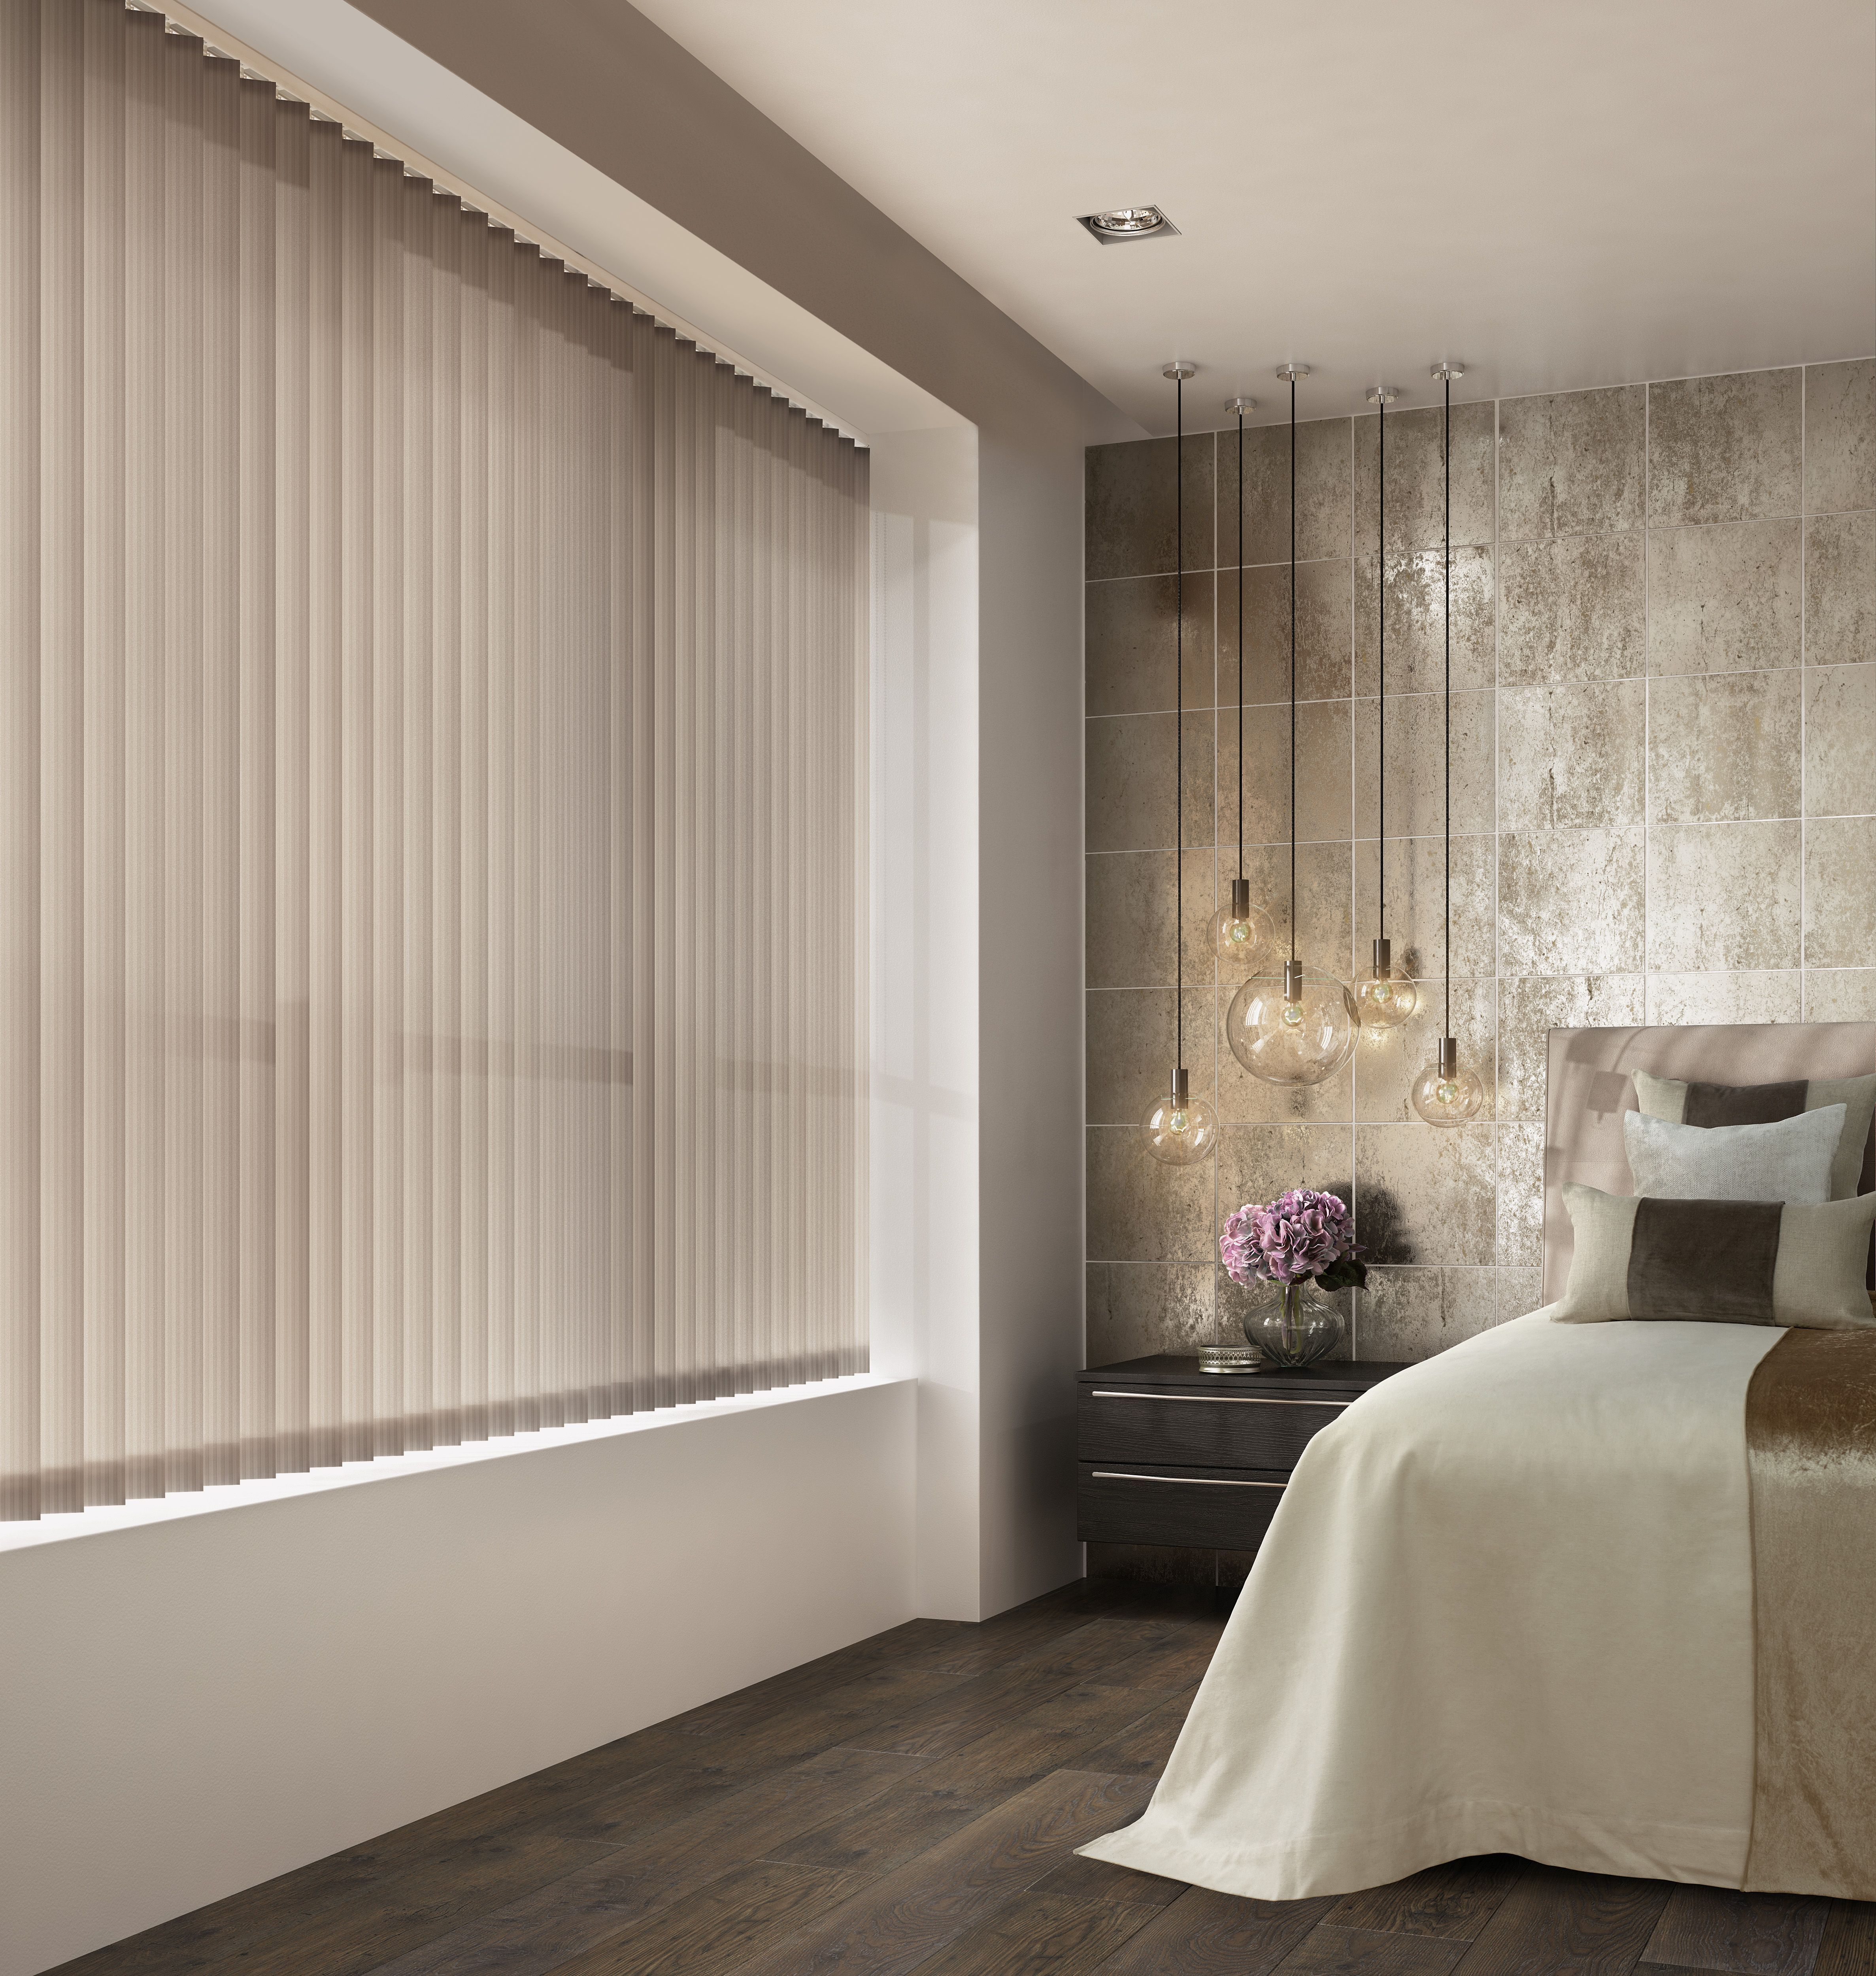 Popular window coverings  perola stone vertical blind blindsandcurtainscombination  blinds